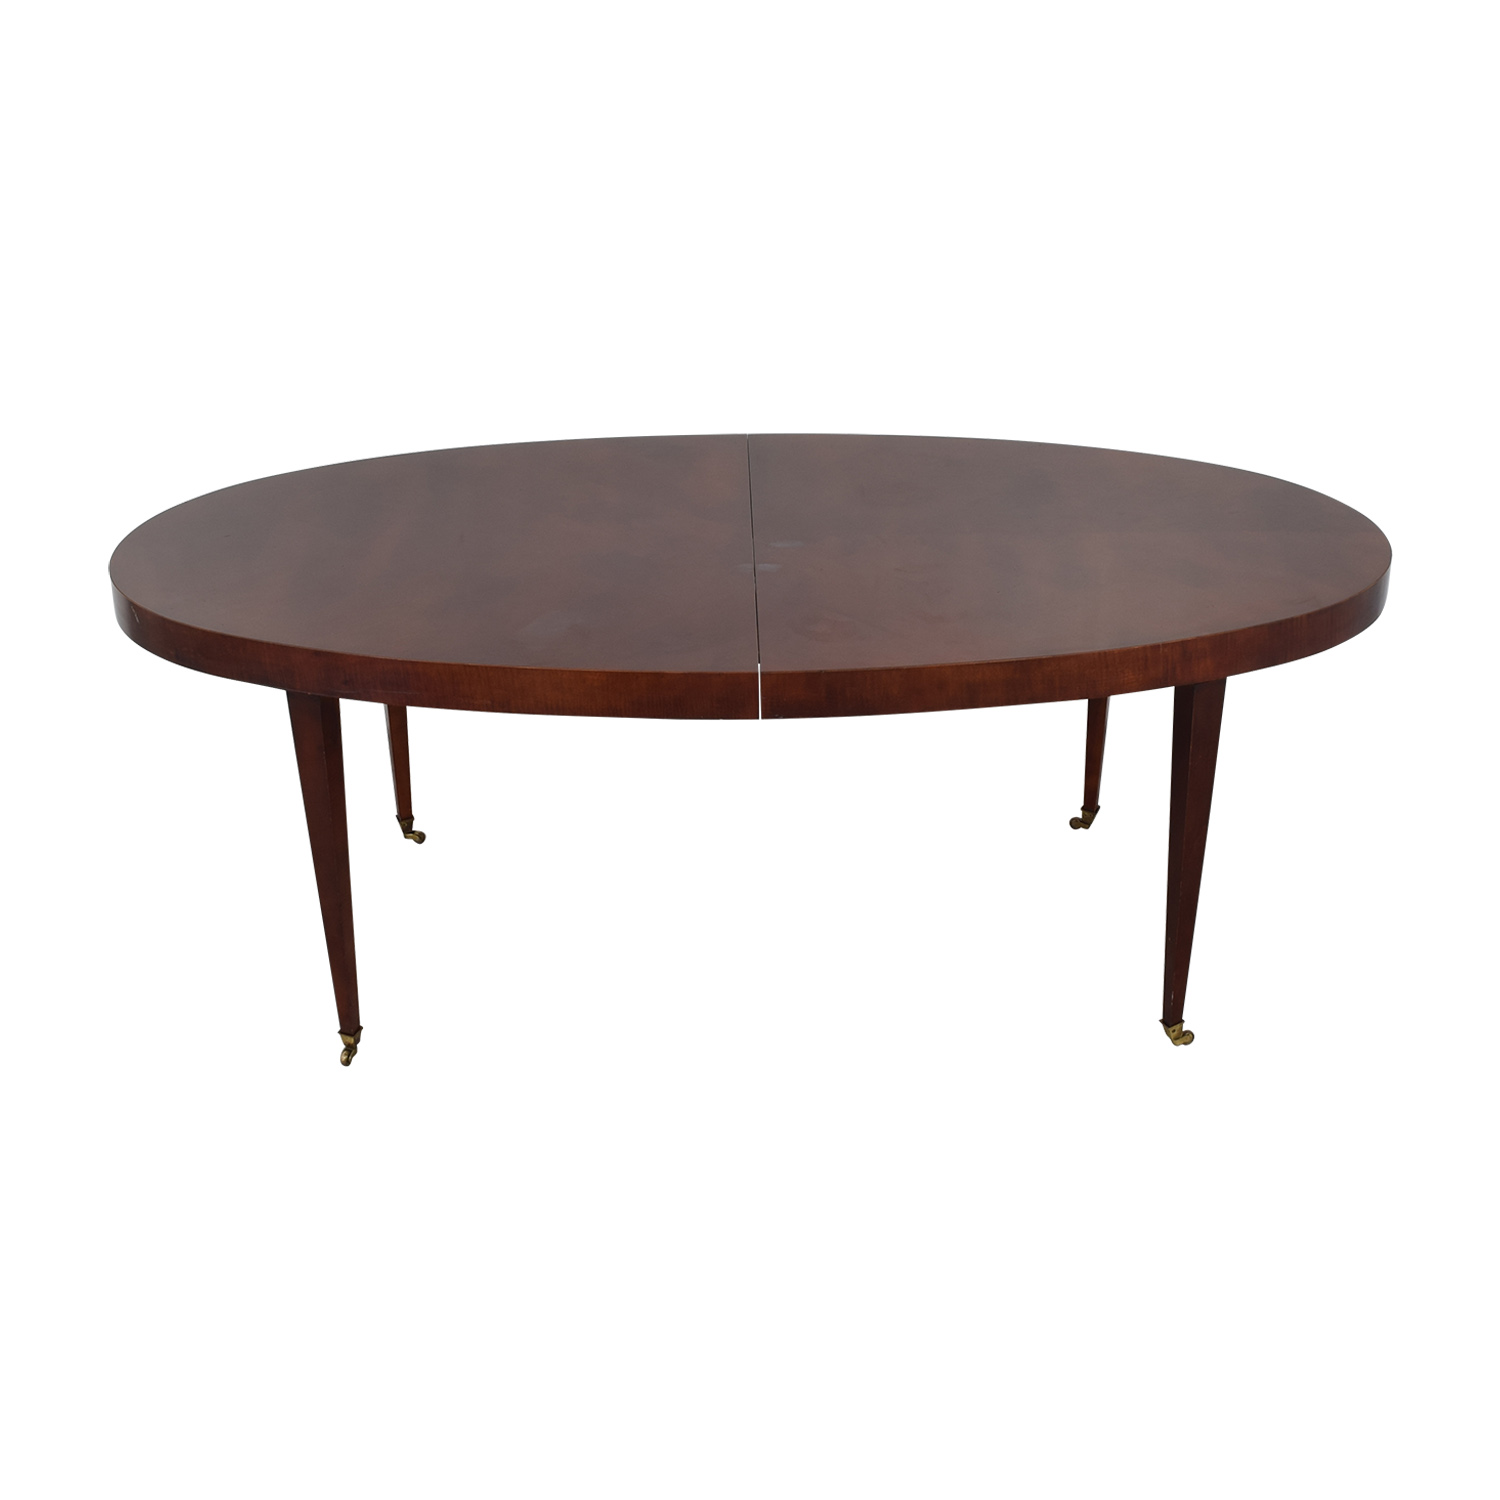 ... Baker Furniture Archetype Dining Table Baker Furniture ...